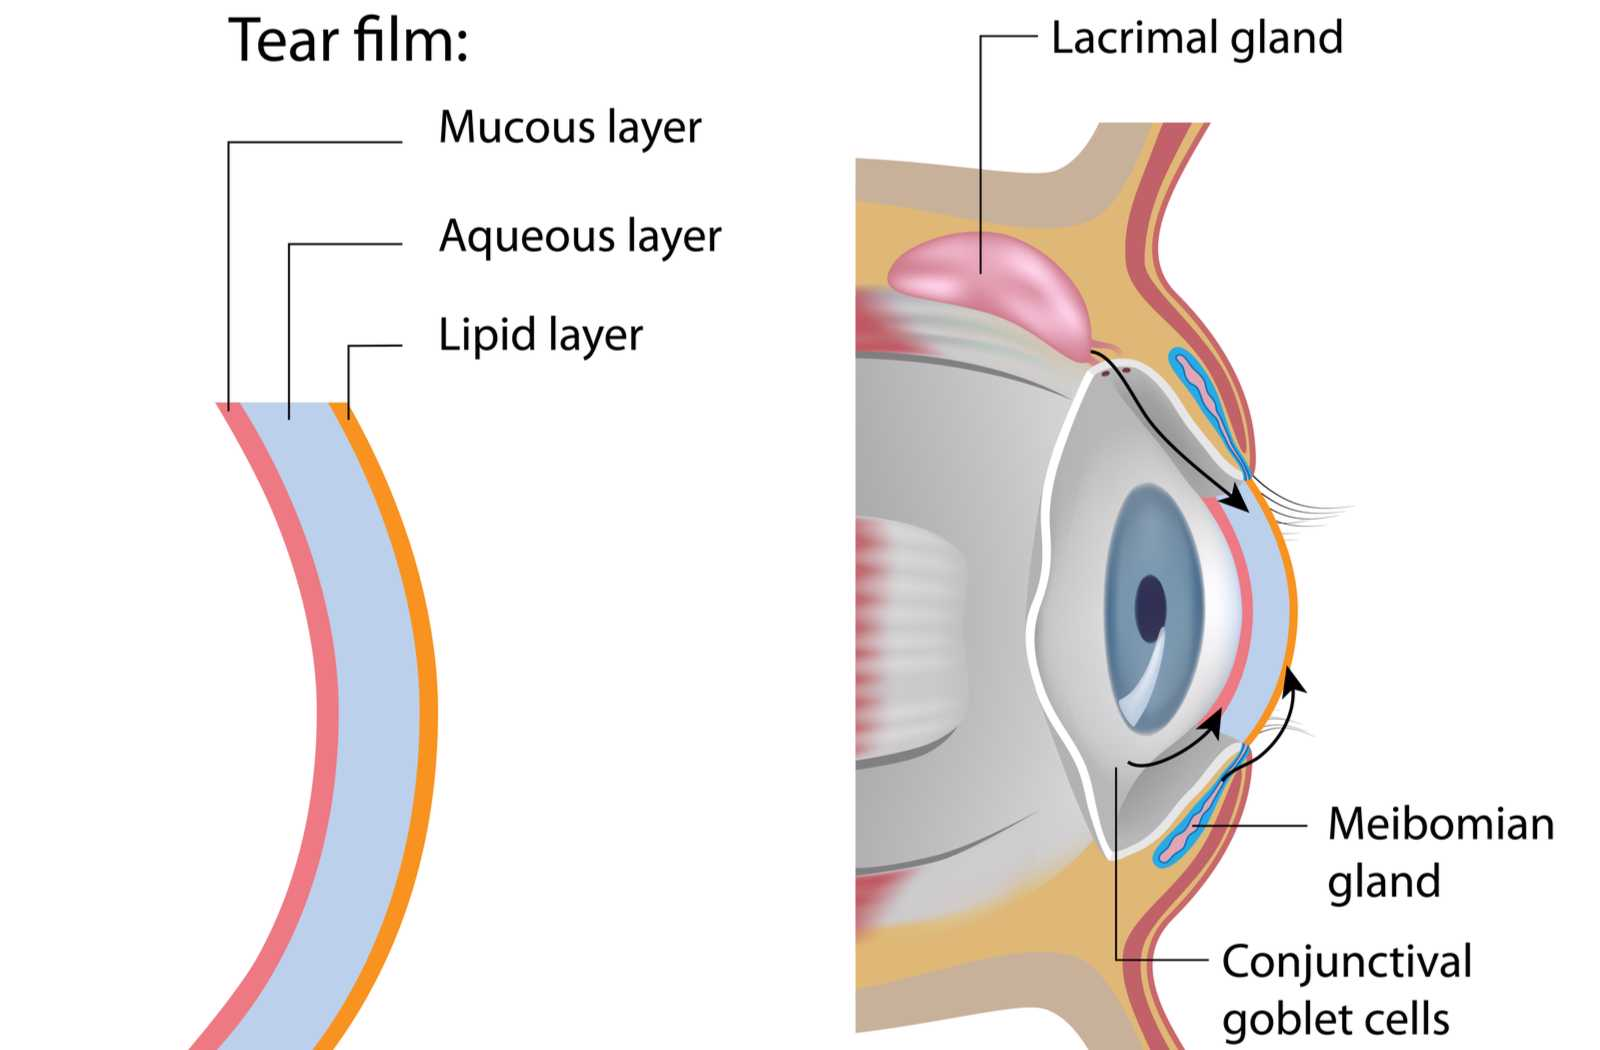 labeled drawing of the tear film and associated glands